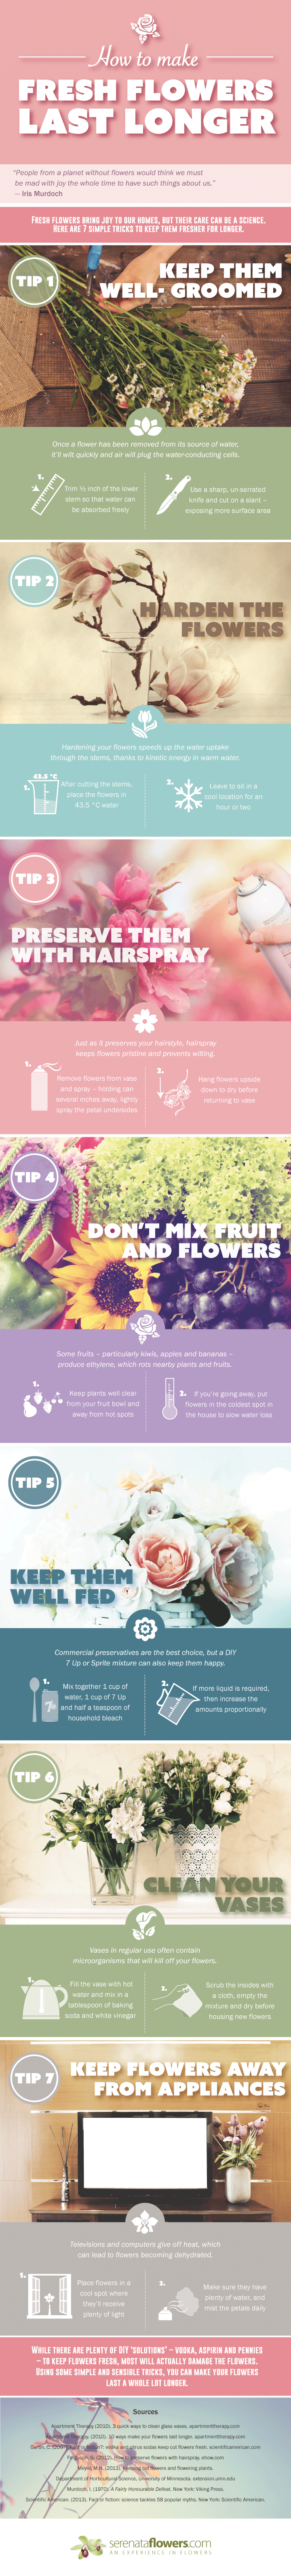 How to Make Fresh Flowers Last Longer  | ecogreenlove